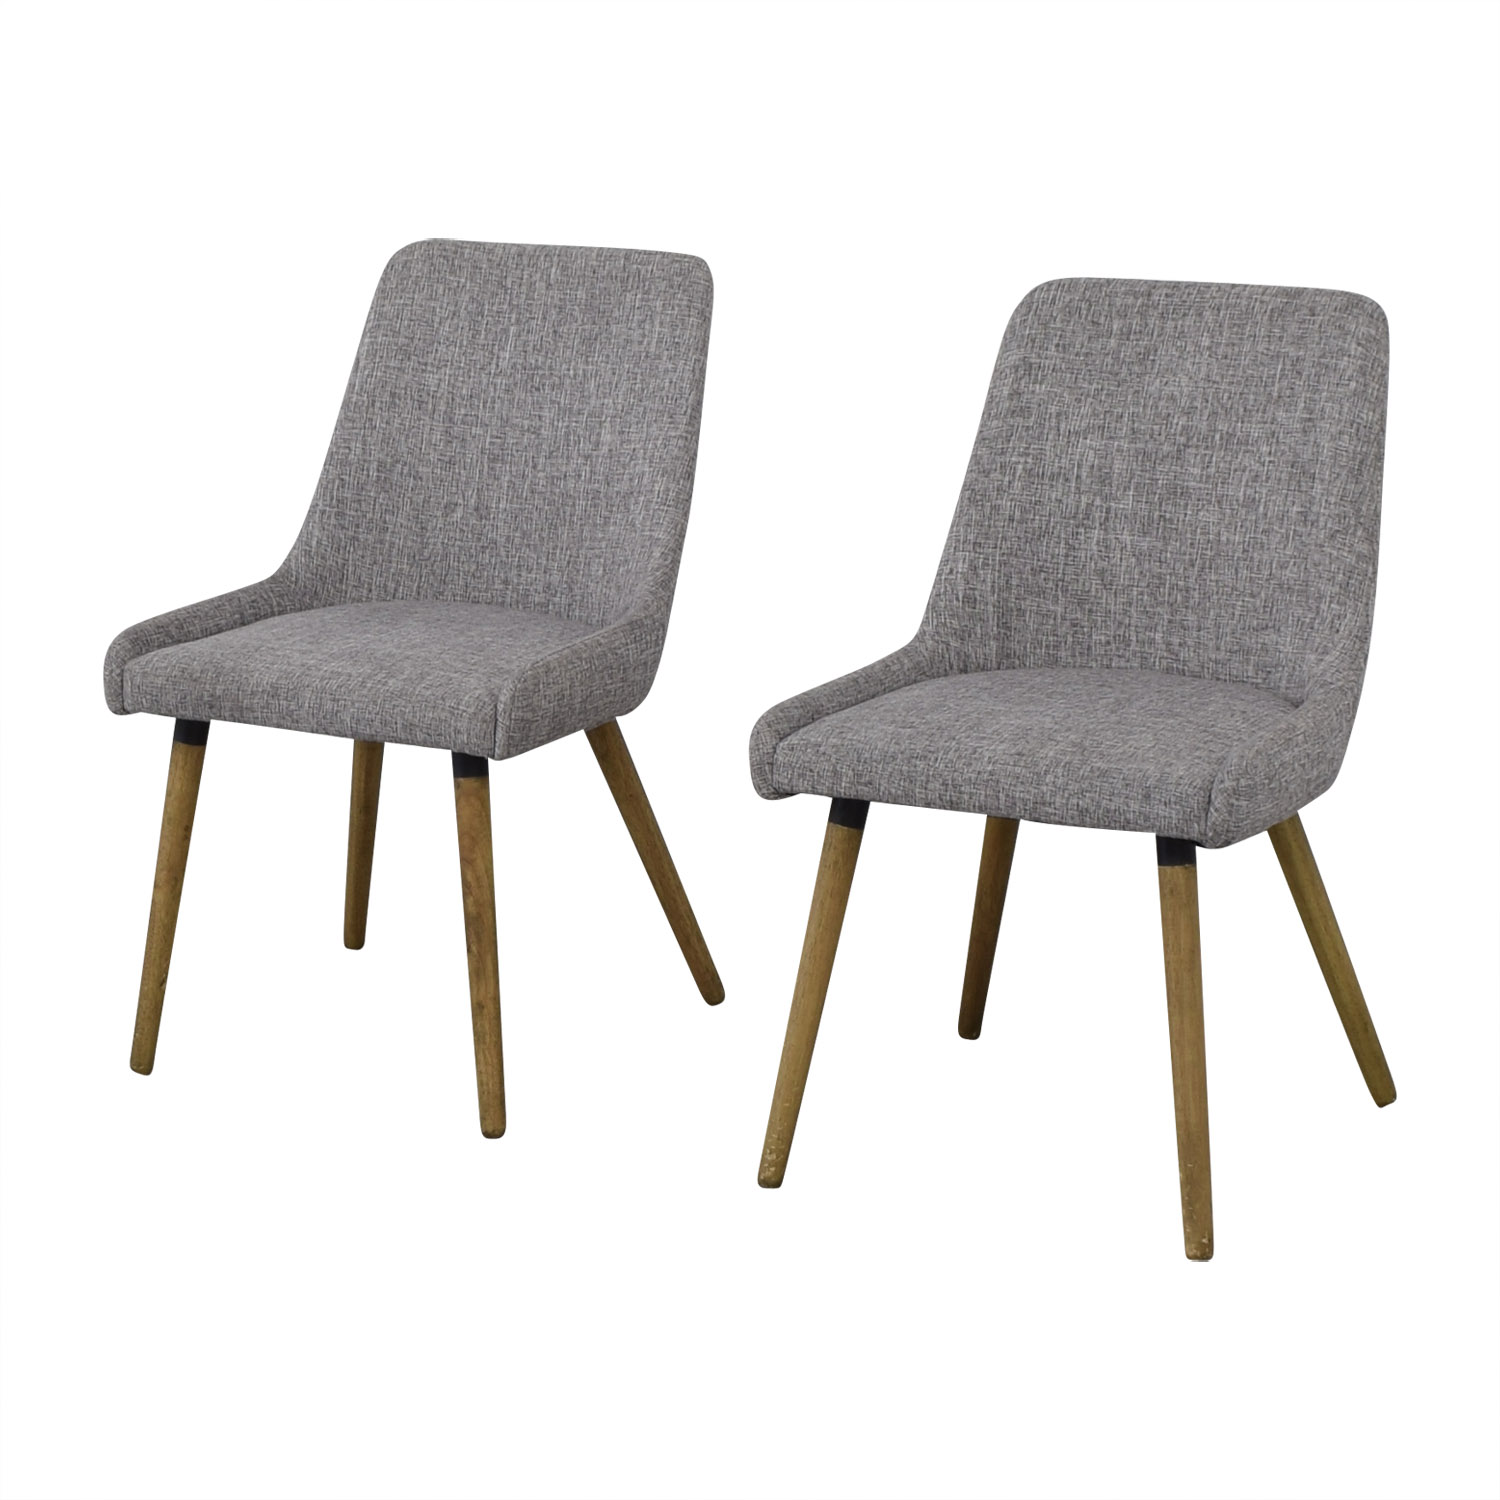 shop West Elm West Elm Mid Century Upholstered Dining Chairs online